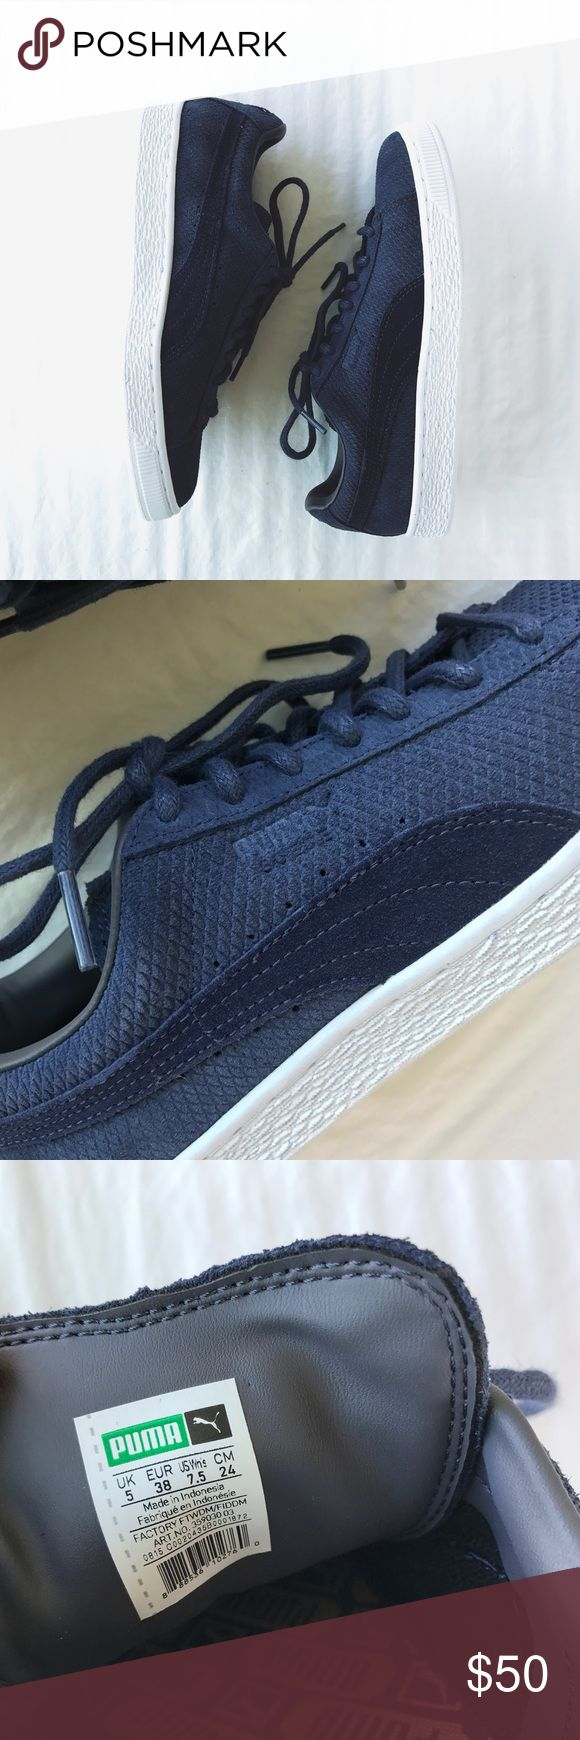 Puma Navy Suede Classic Lo Winterized Sneakers •Diamond shape navy suede sneakers.    •Women's size 7.5. True to size but best for a narrow-normal width foot.  •New in box (no lid).  •NO TRADES/HOLDS/PAYPAL/MERC/VINTED/NONSENSE. Puma Shoes Sneakers